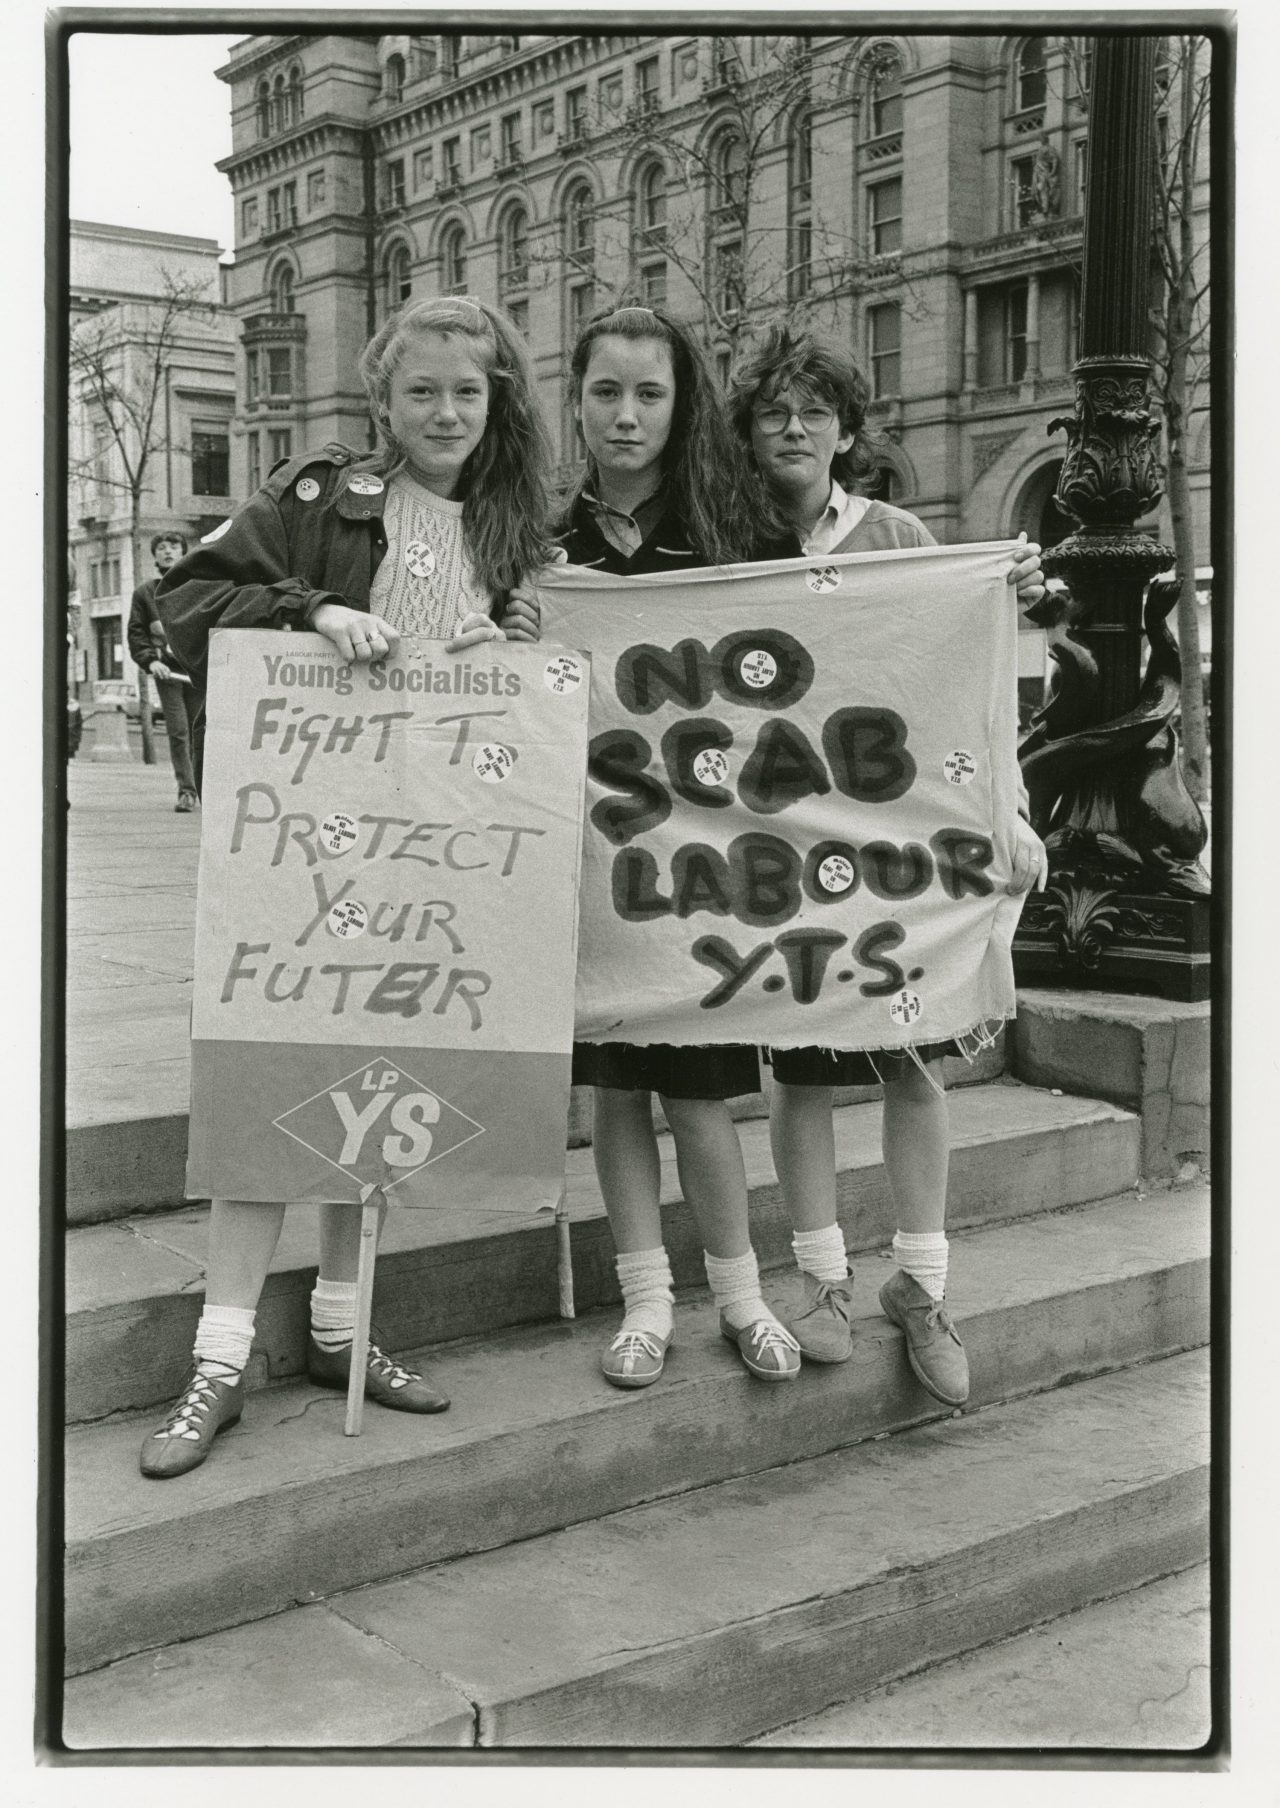 Great Photos of the Liverpool School Strike of 1985